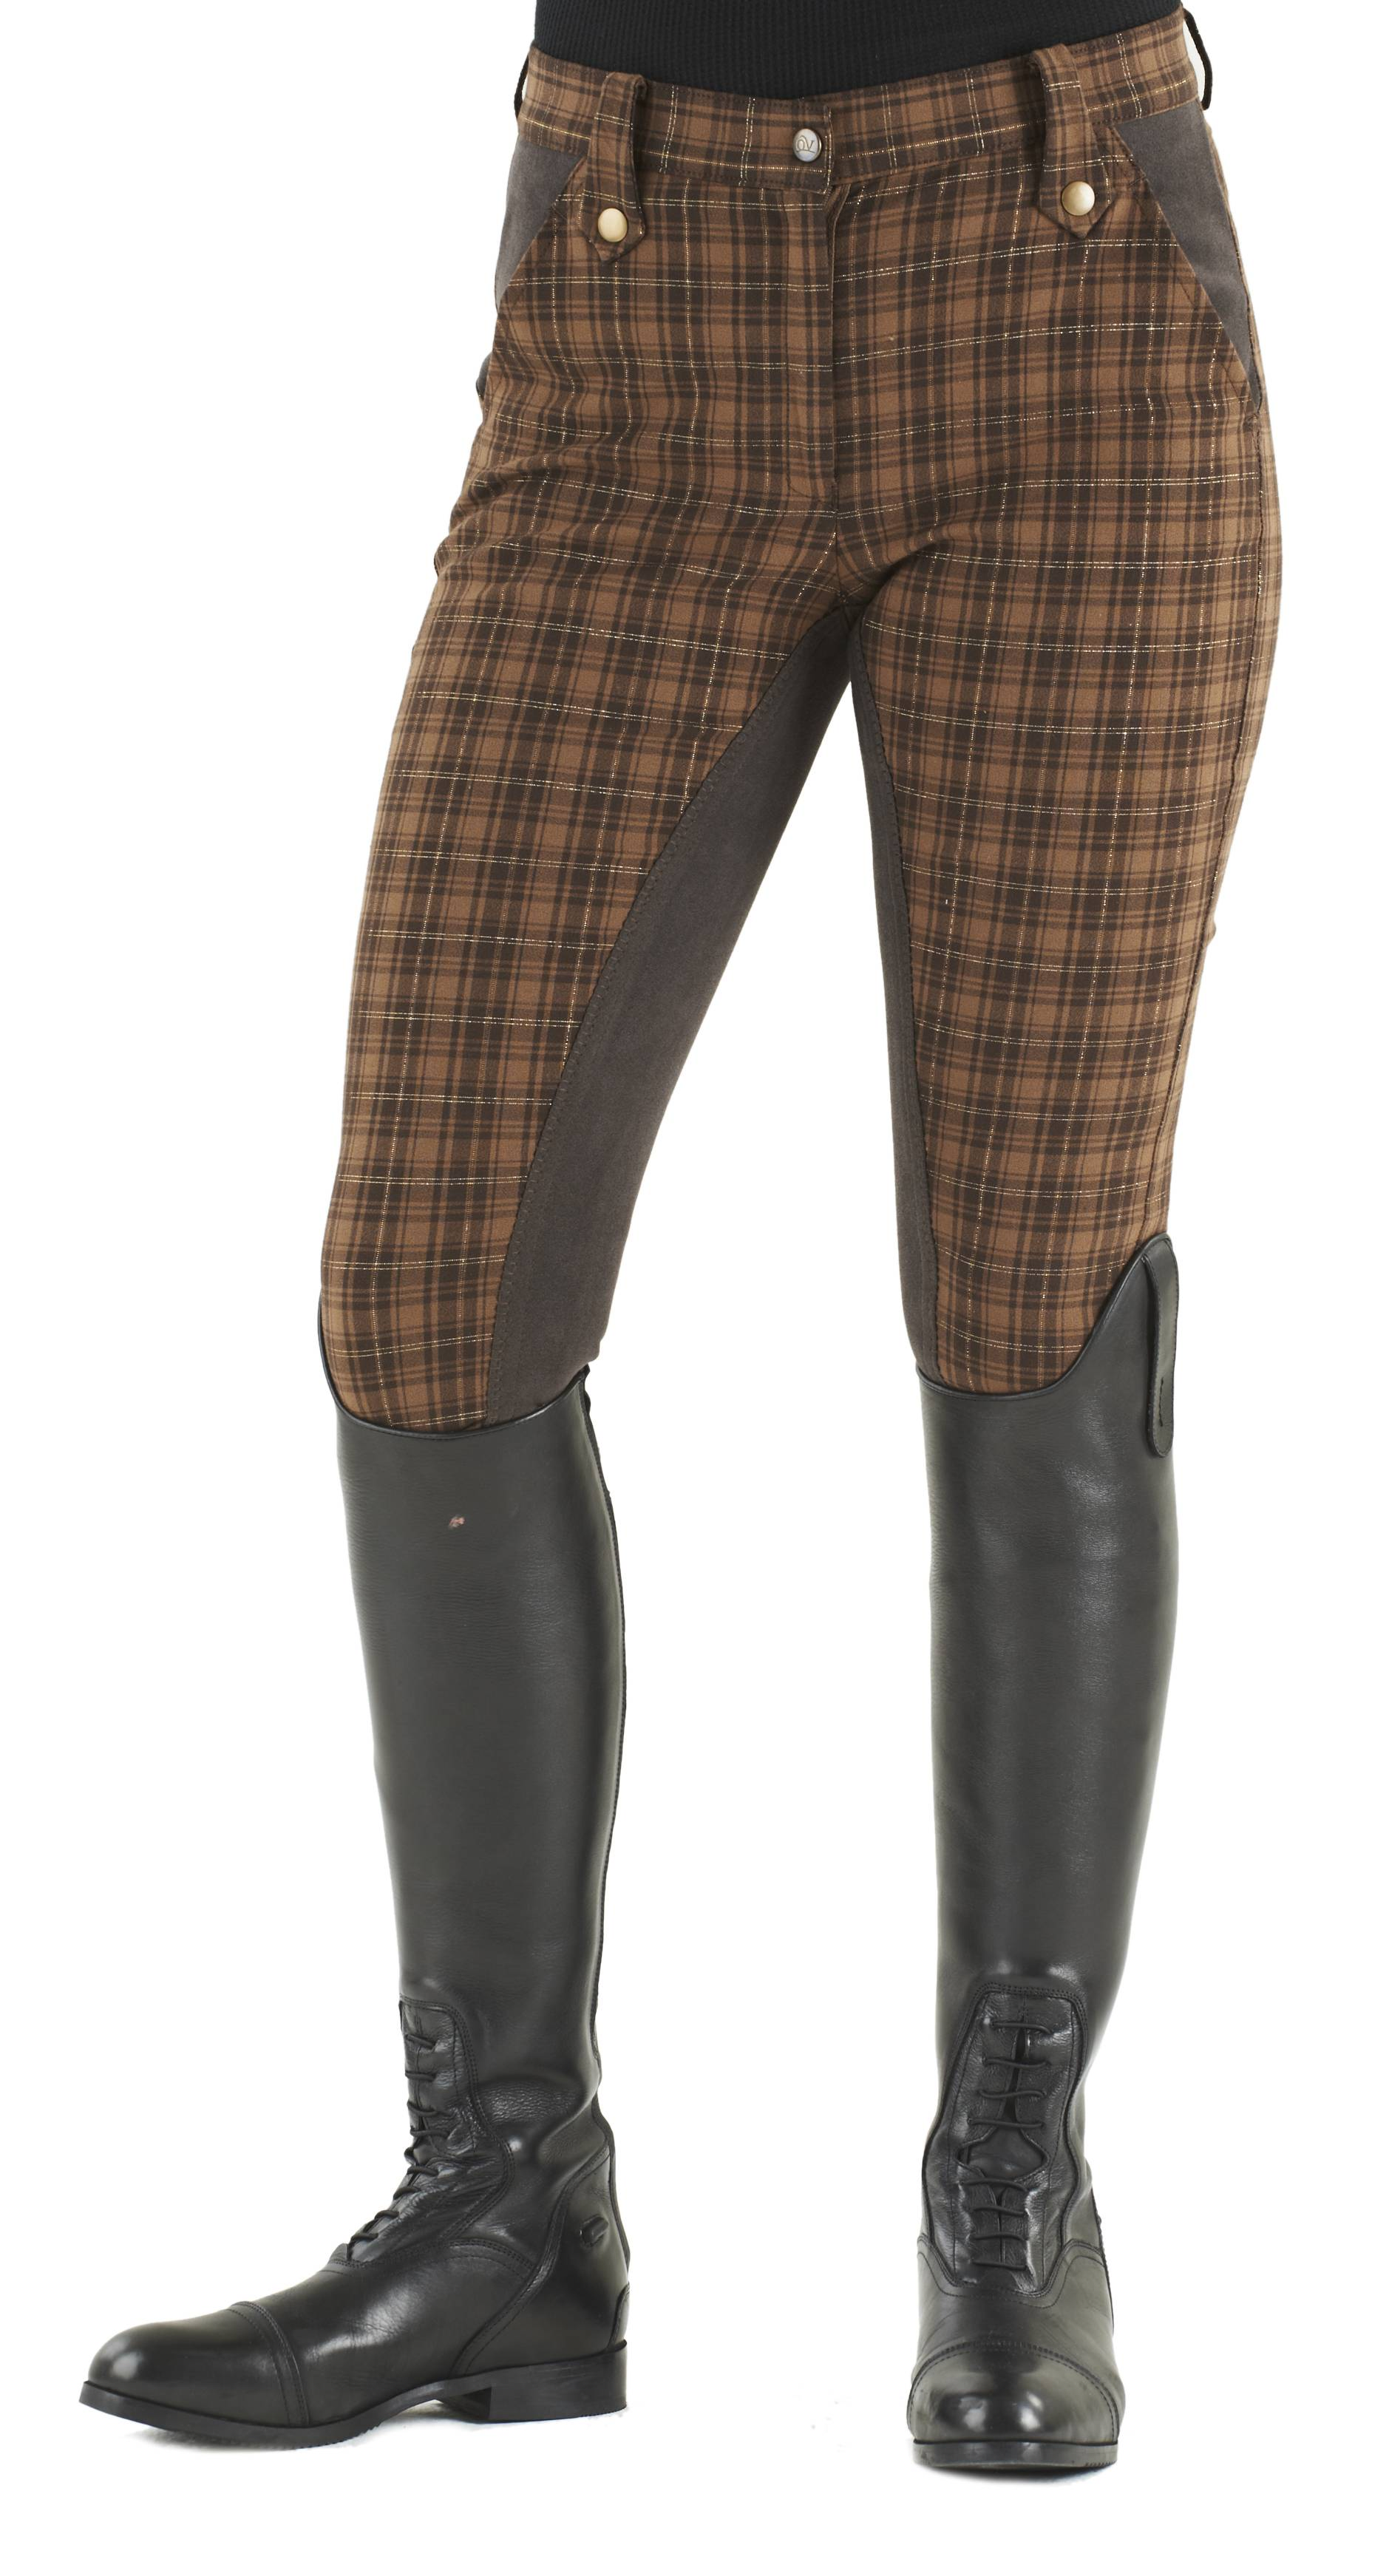 breeches Ovation Sparkle Plaid Breeches - Ladies, Full Seat